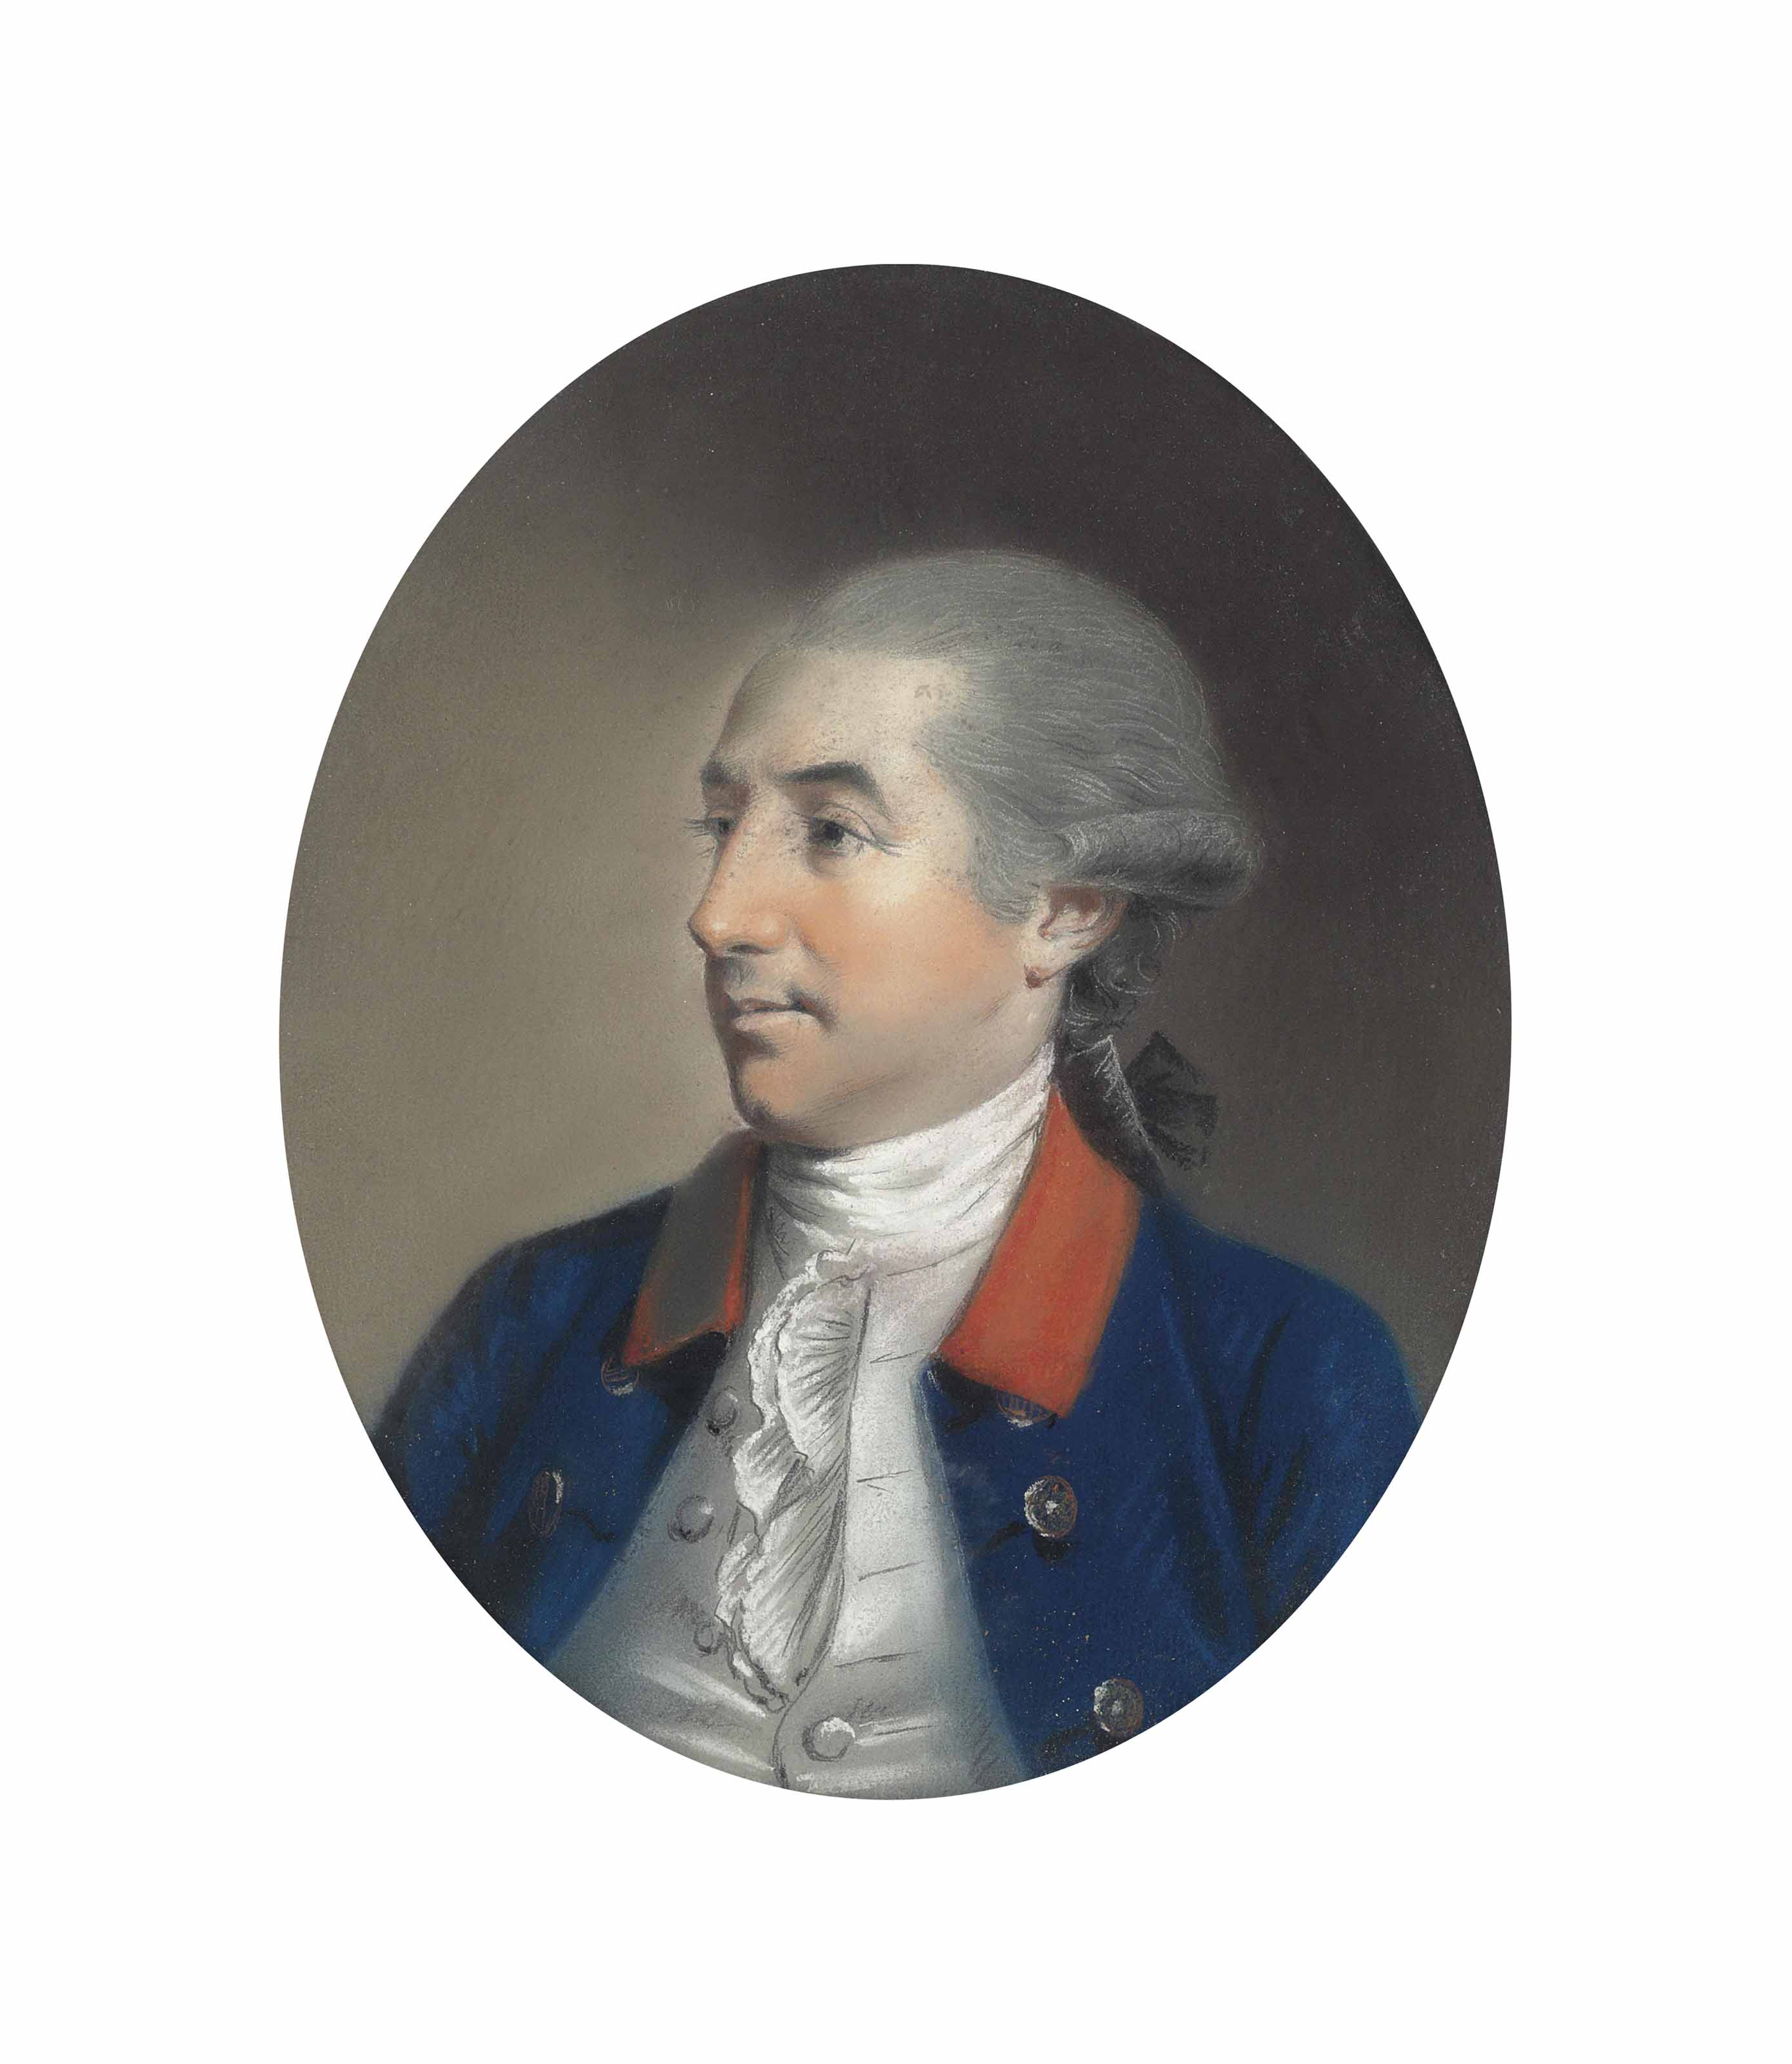 Portrait of the Rt. Hon. David La Touche of Marlay, Dublin (1734-1806), bust-length, in a blue coat with a red collar and white stock